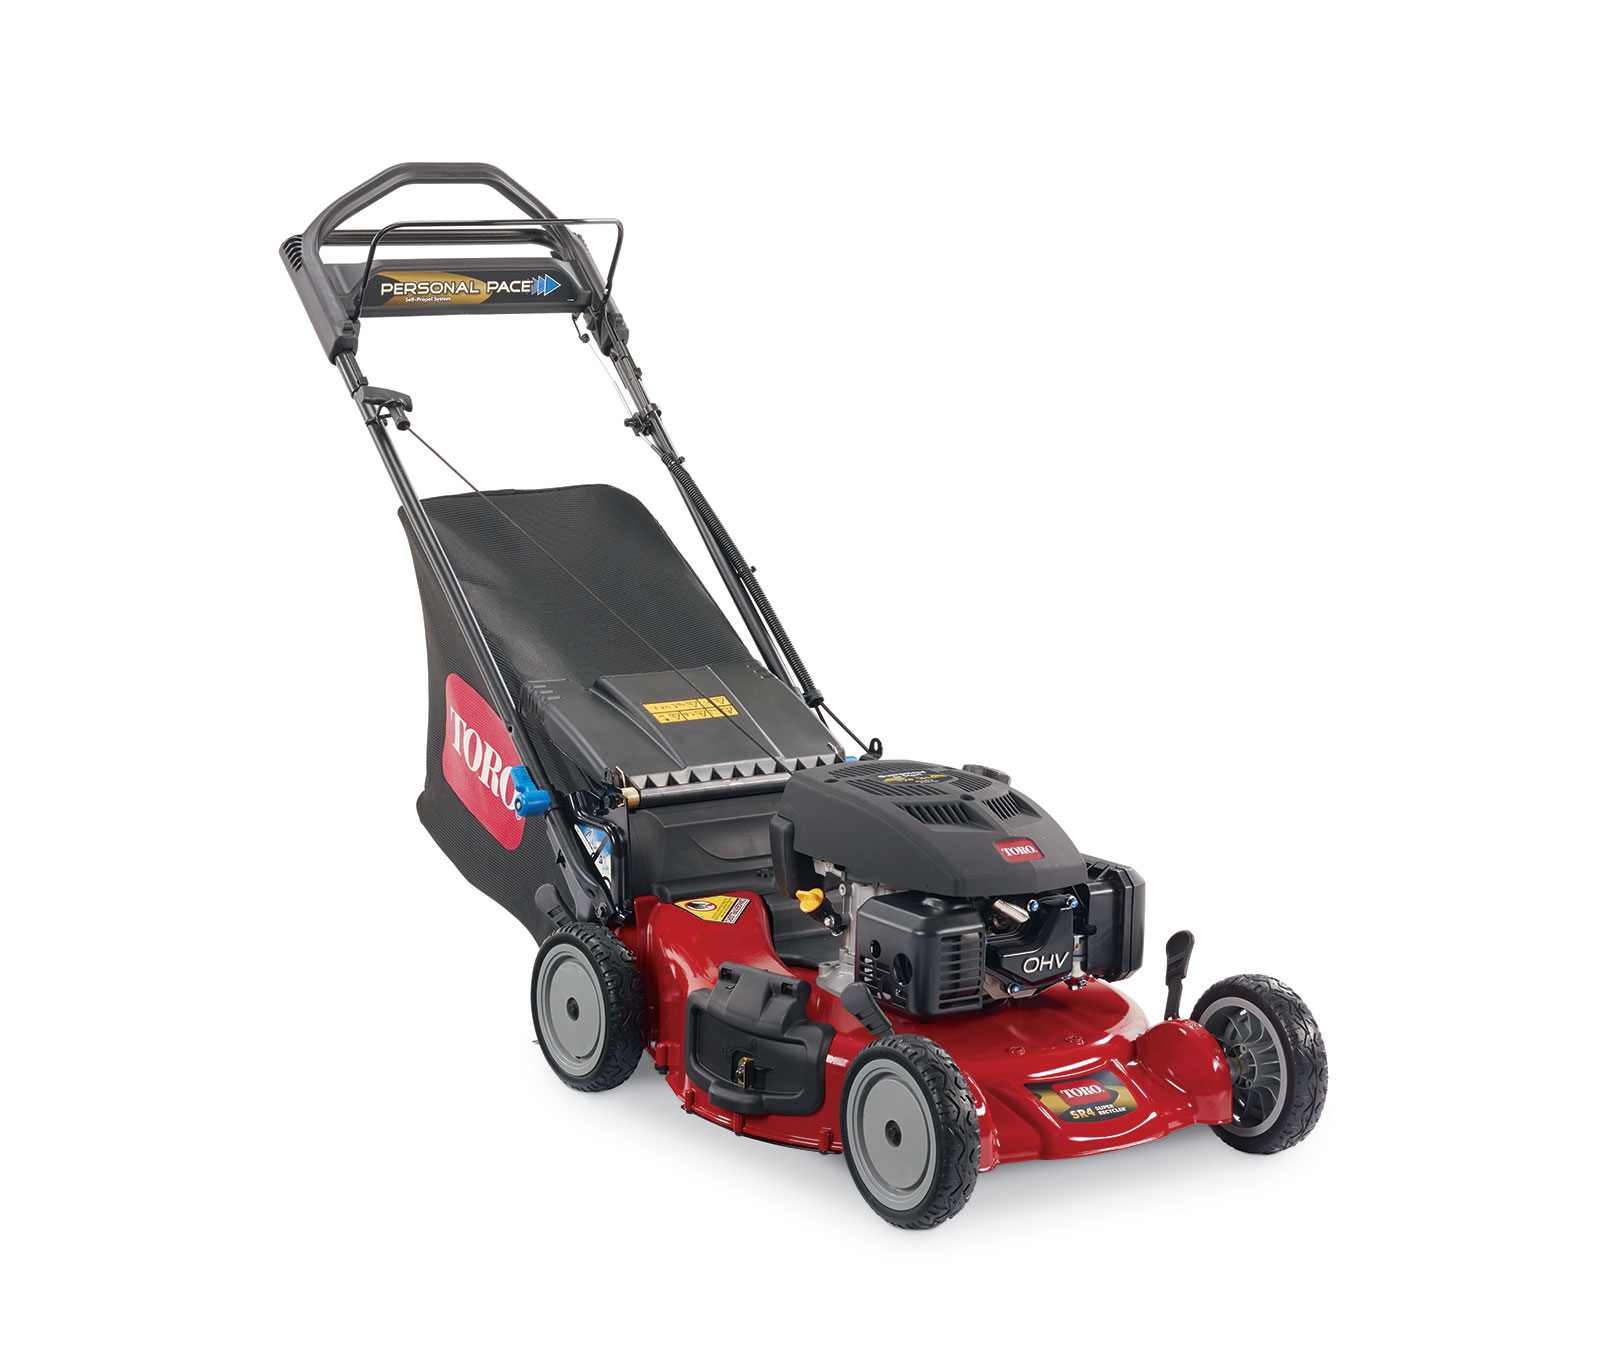 toro 21 53 cm personal pace 3 in 1 lawn mower rh toro com toro personal pace mower parts list toro personal pace mower repair manual